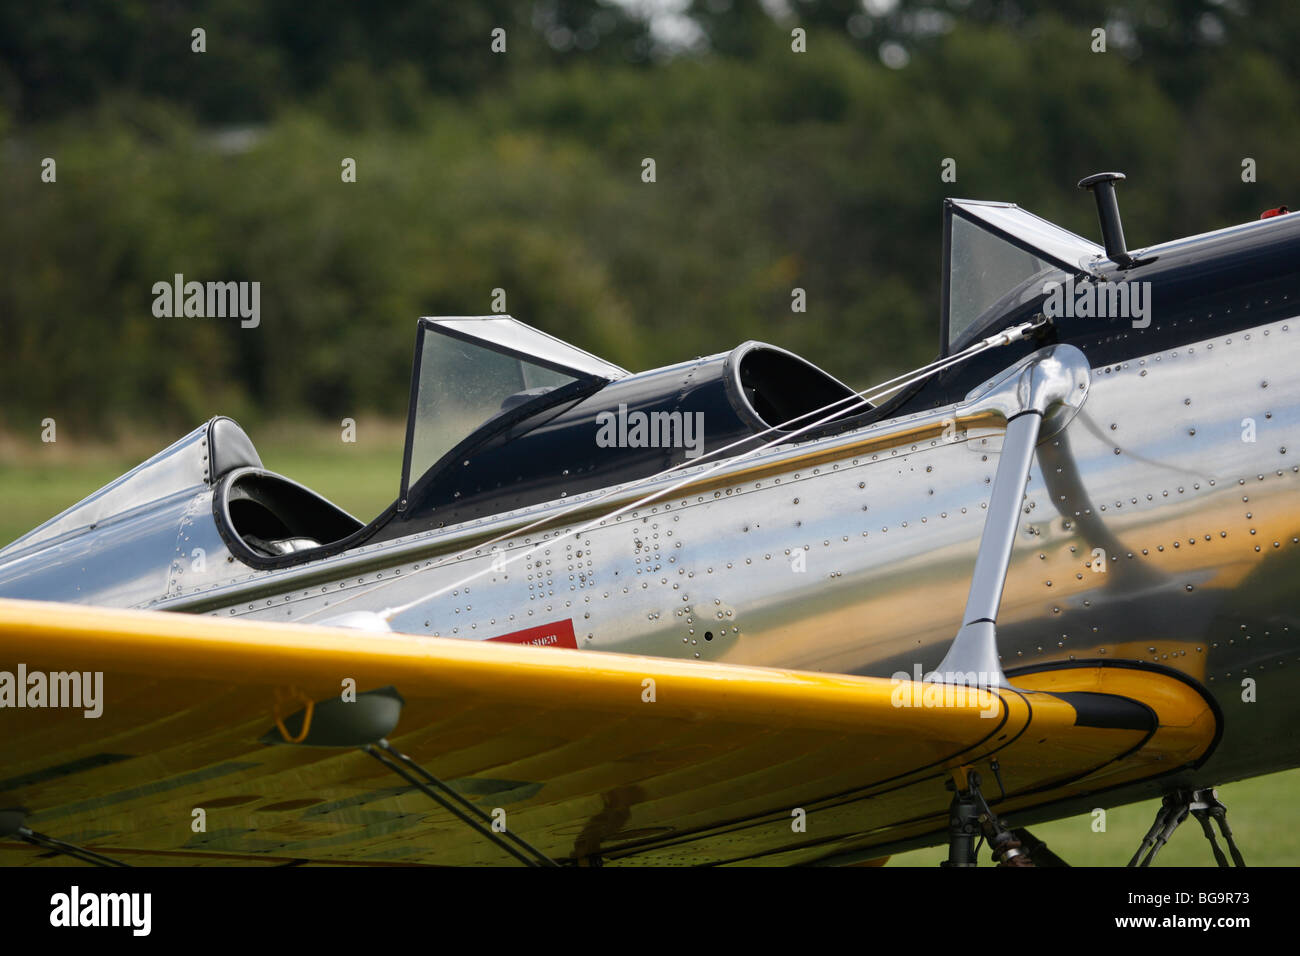 Ryan PT22 recruit military trainer monoplane from 1942. - Stock Image